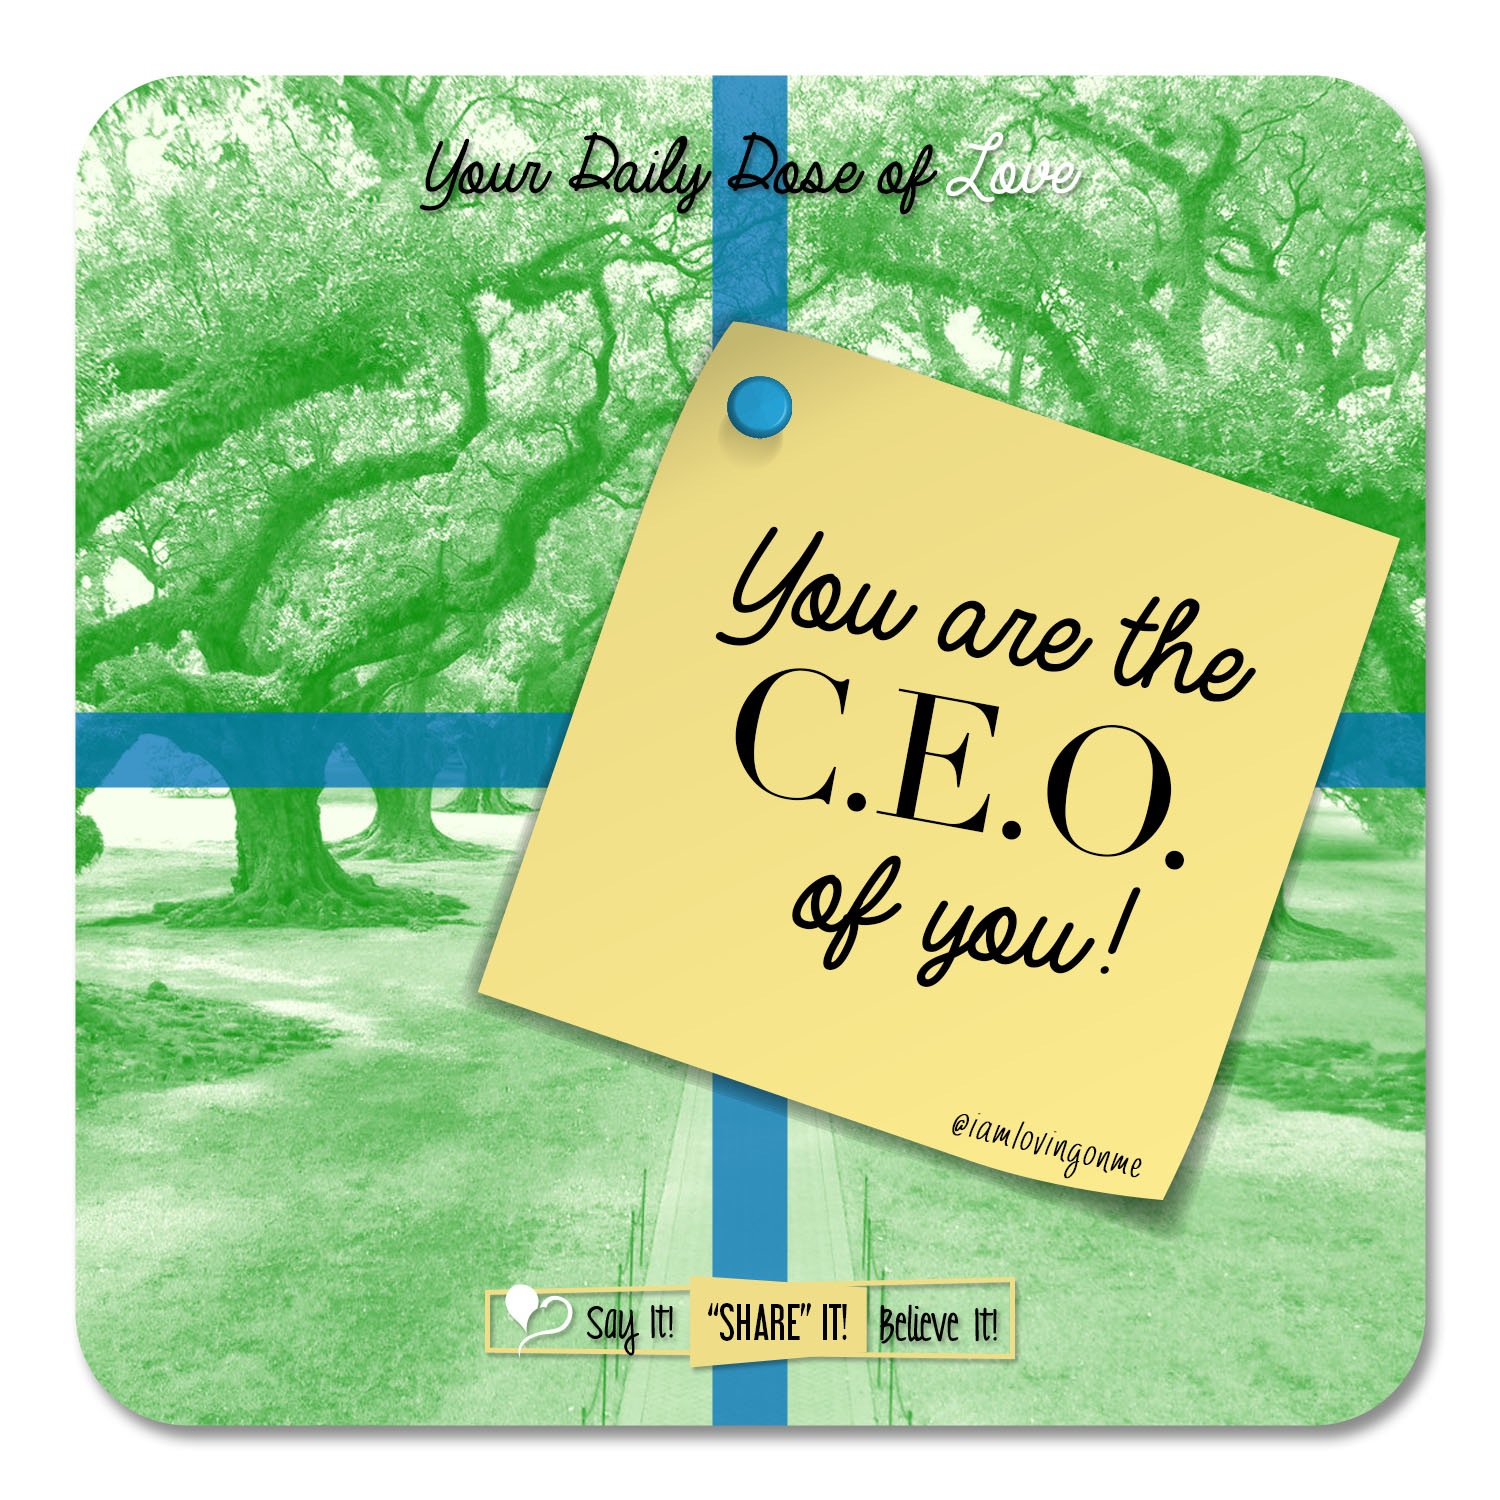 CEO of You